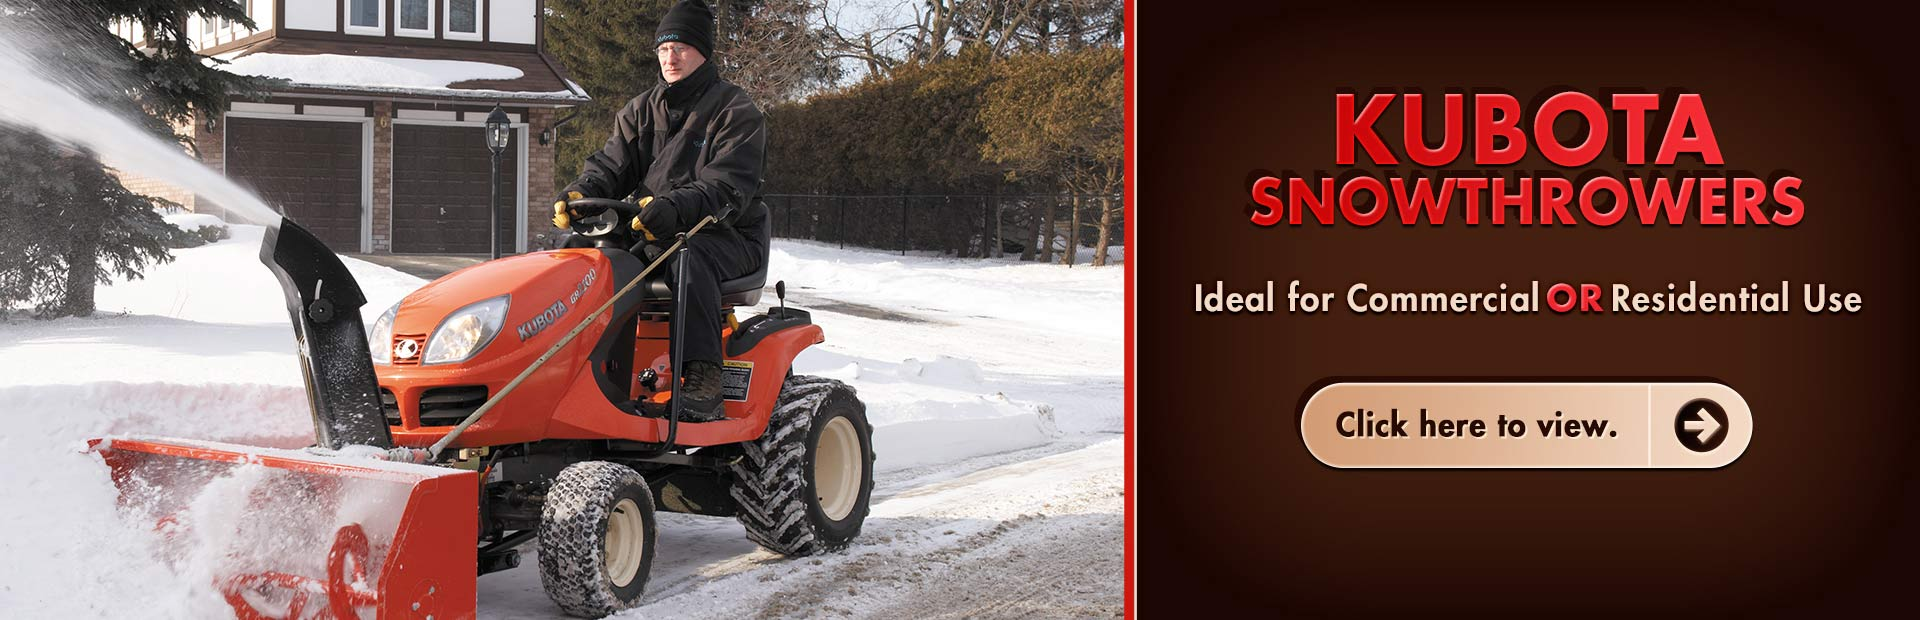 Click here to view Kubota snowthrowers.